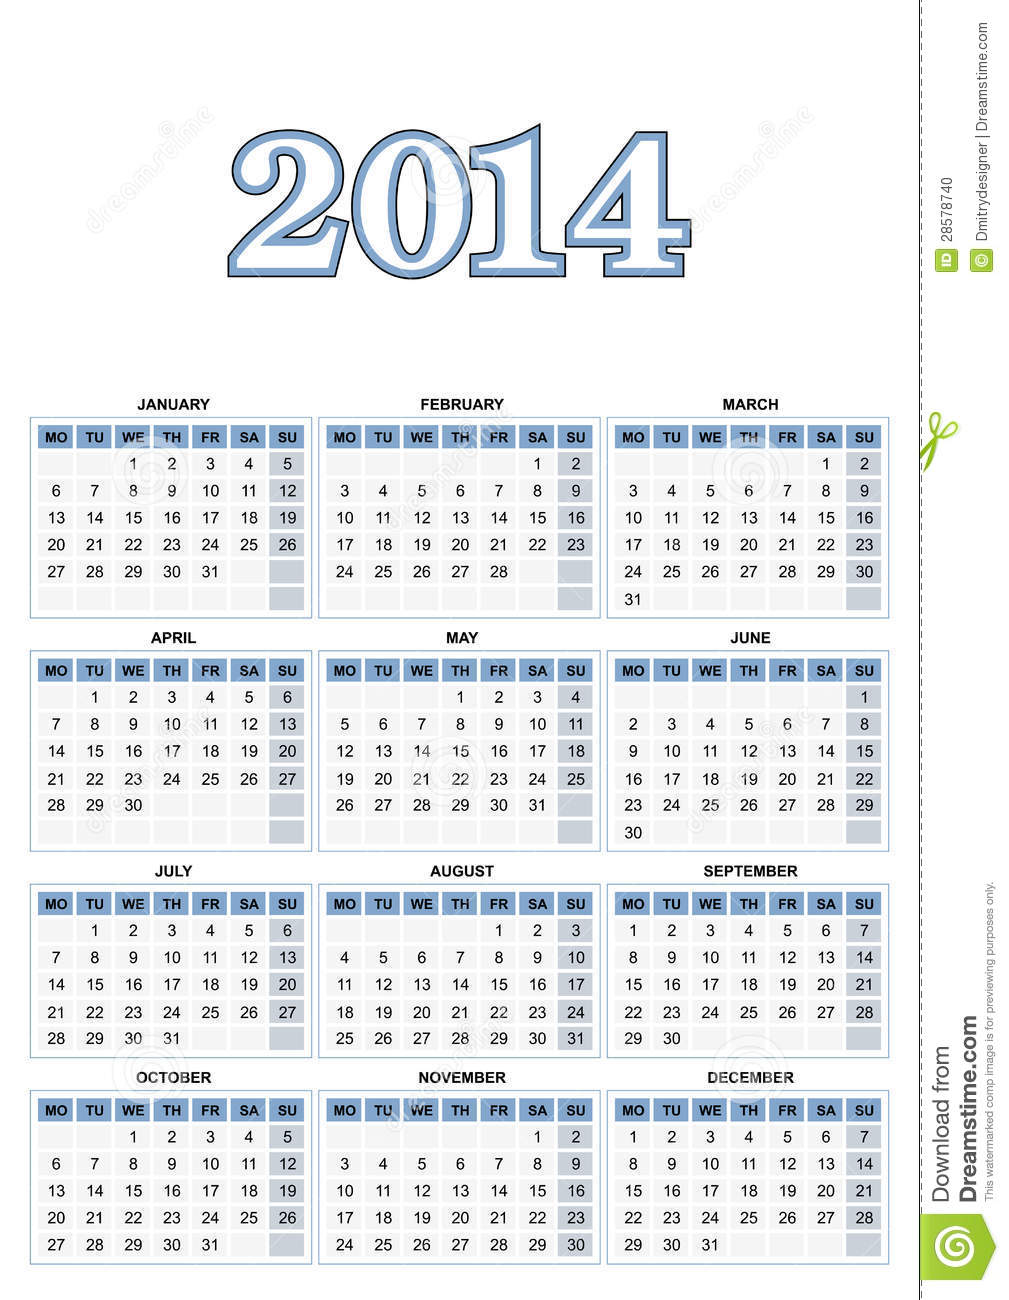 Foto de archivo: Calendario europeo 2014 en vector